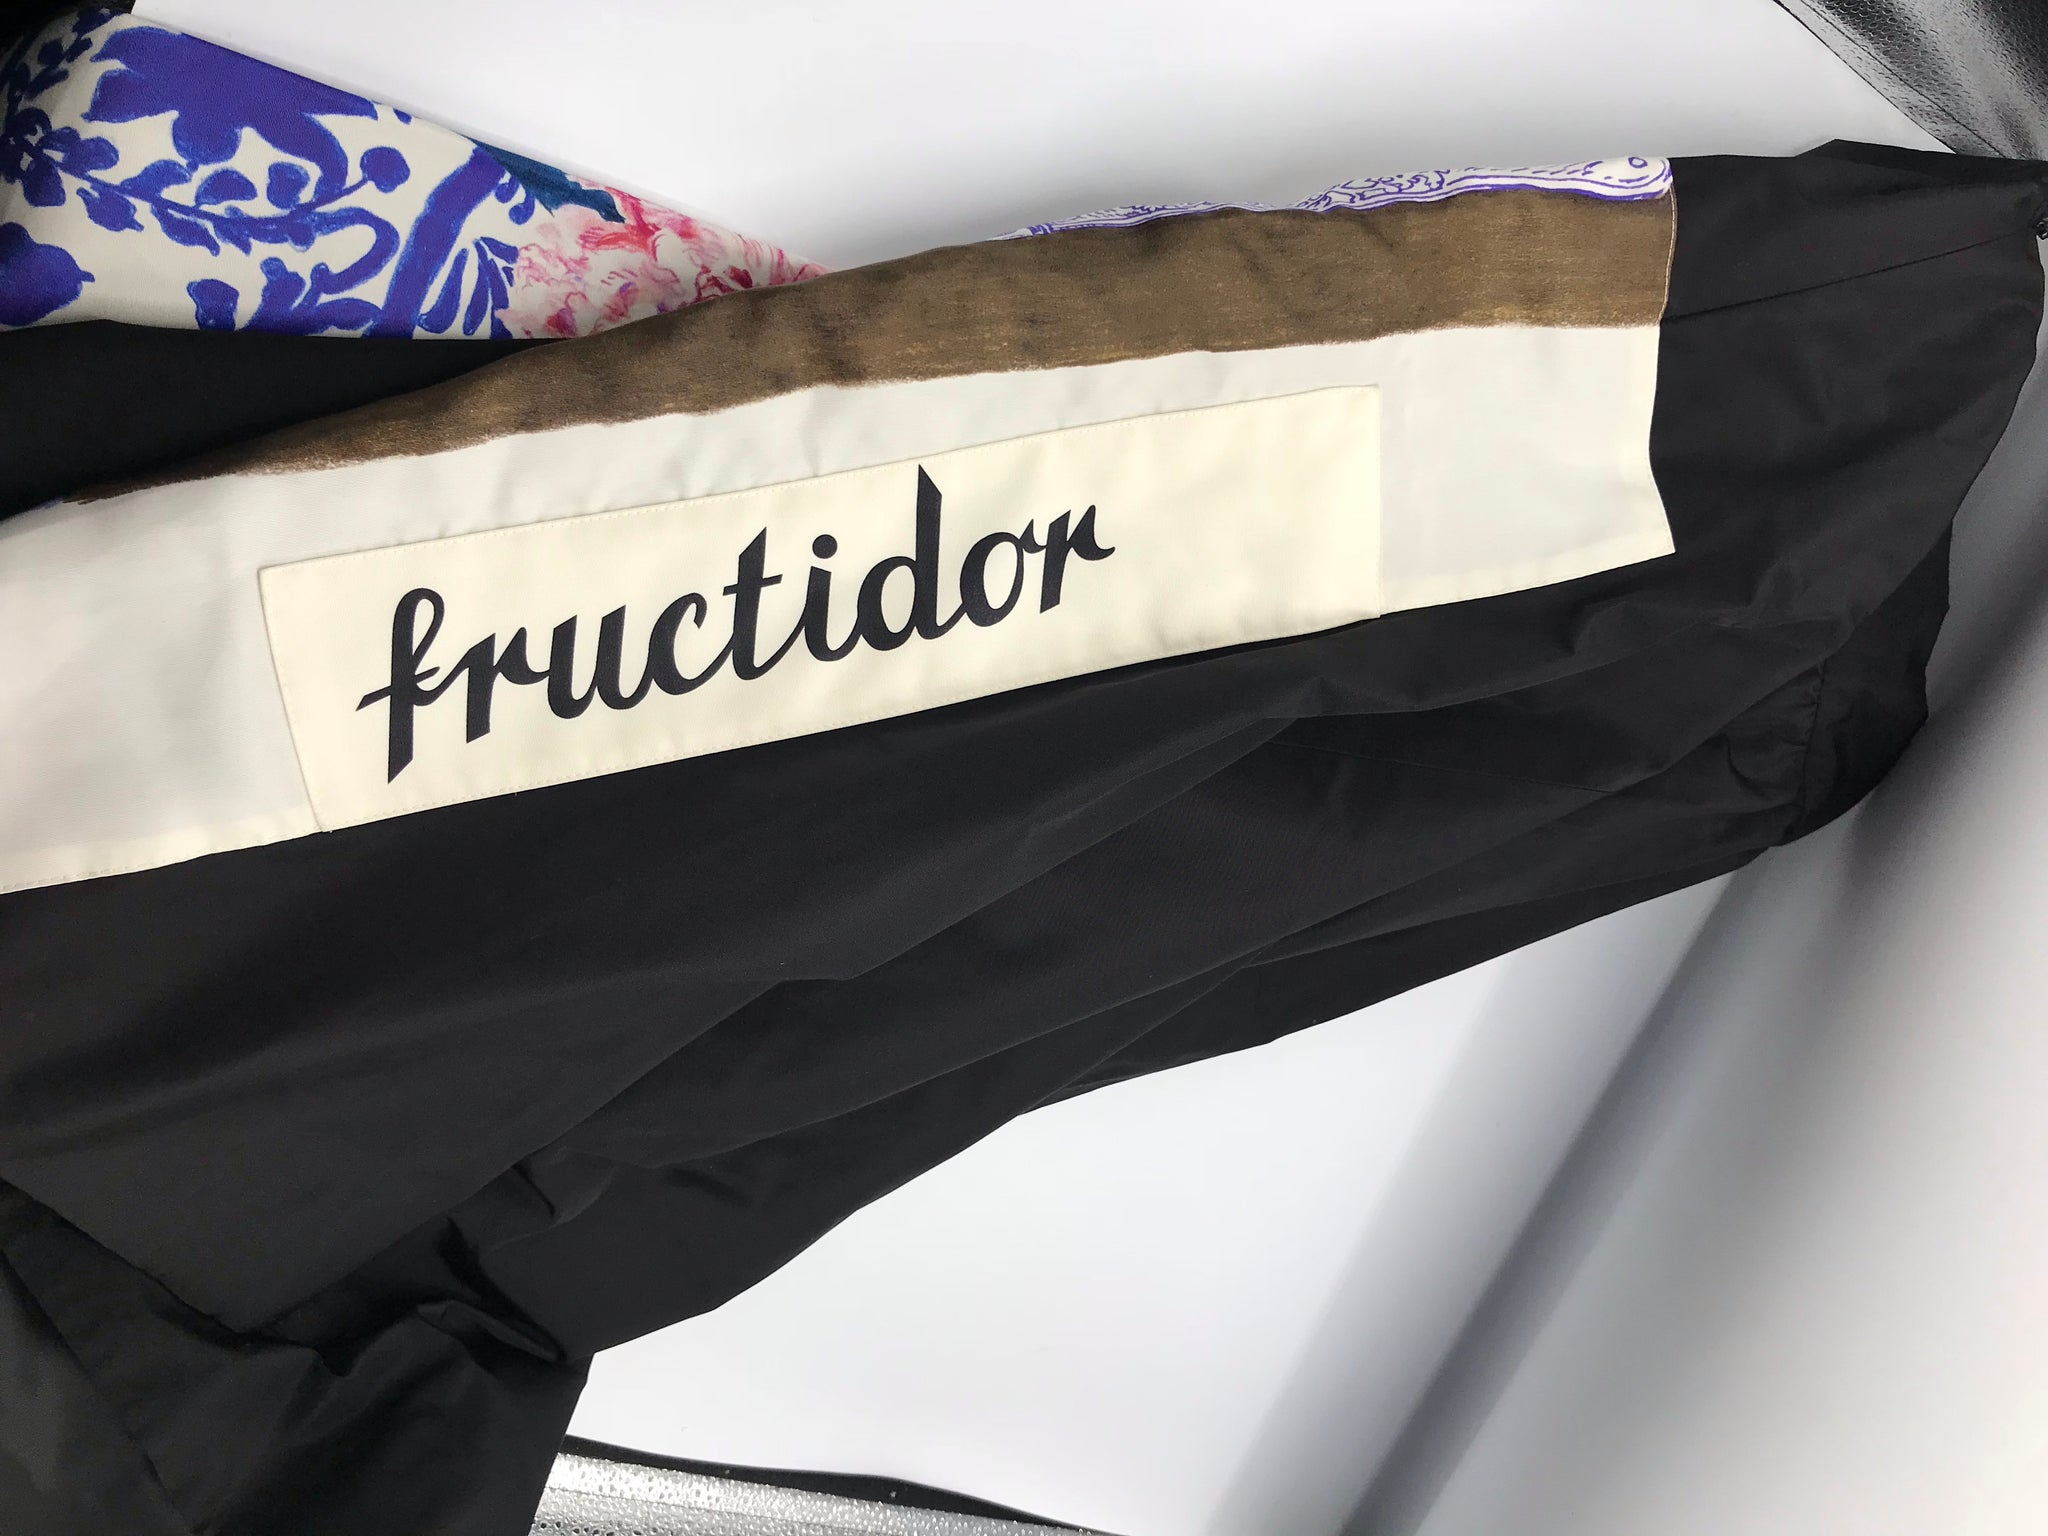 Prada skirt (Fructidor) - Iconics Preloved Luxury